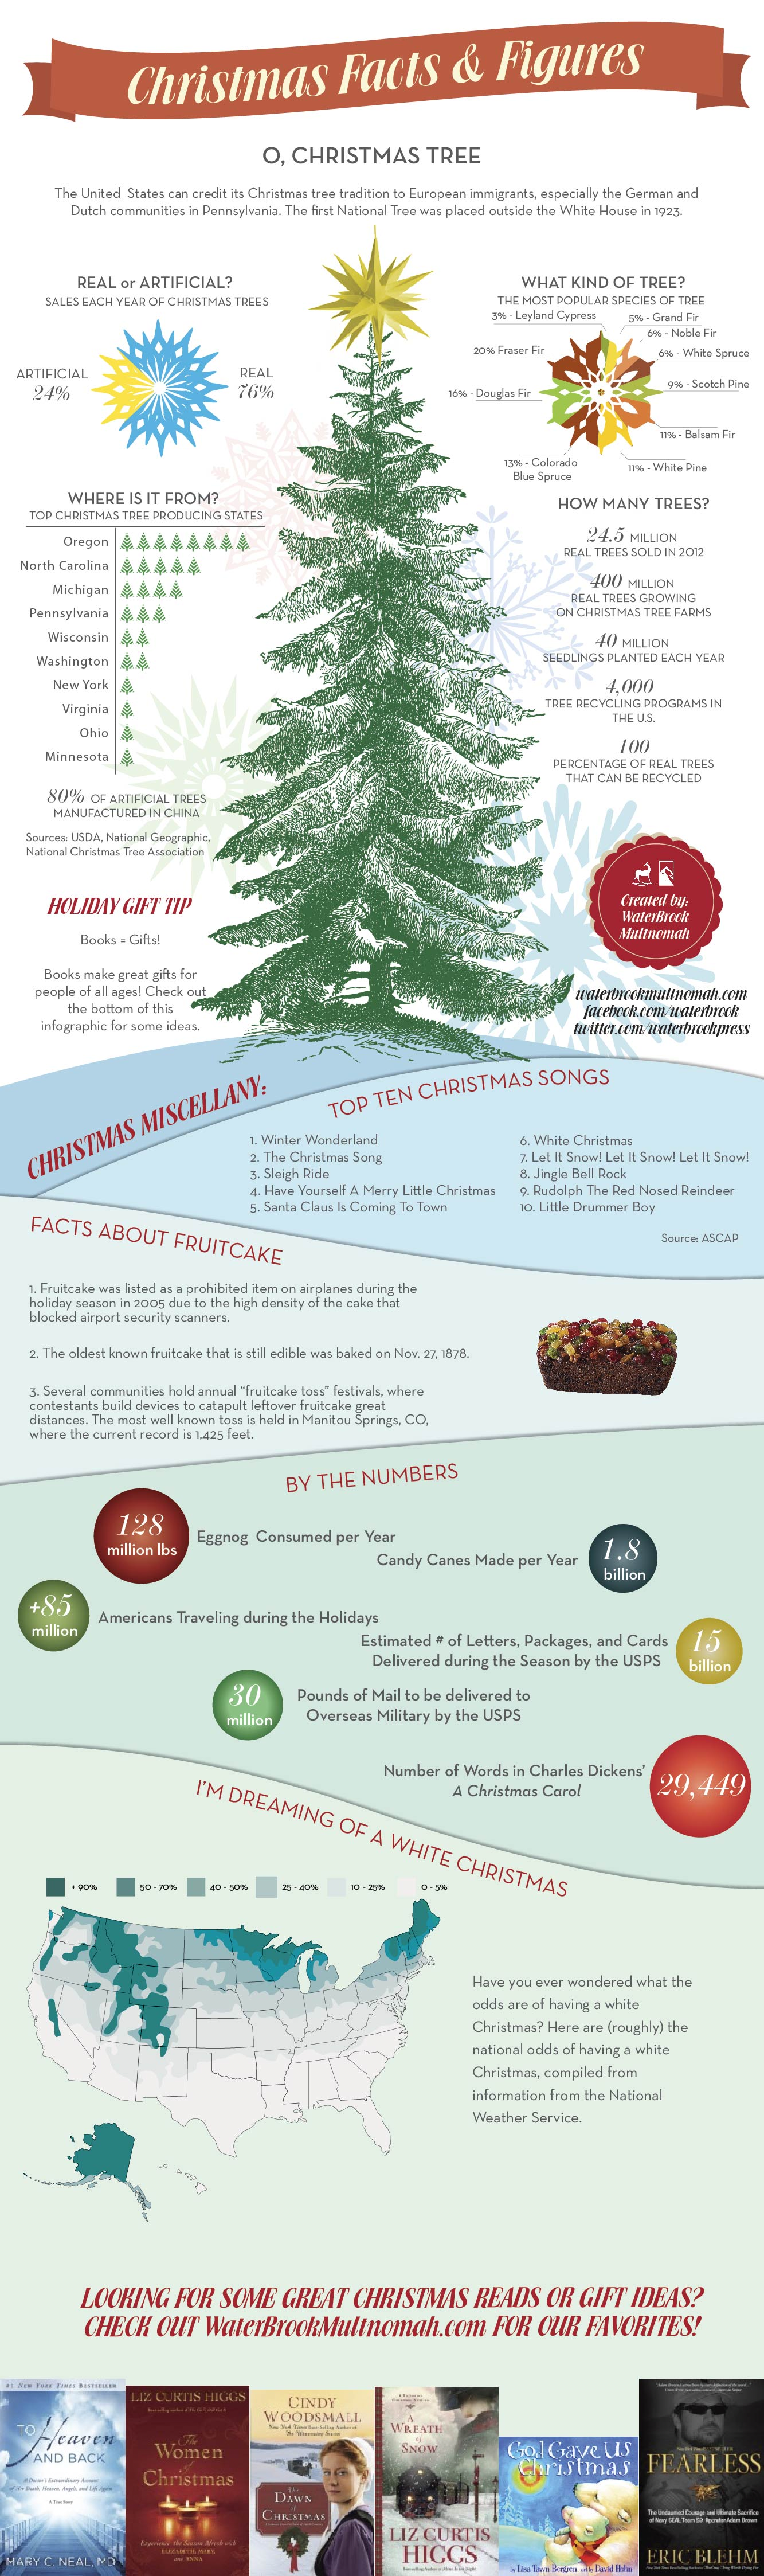 Christmas Facts and Figures